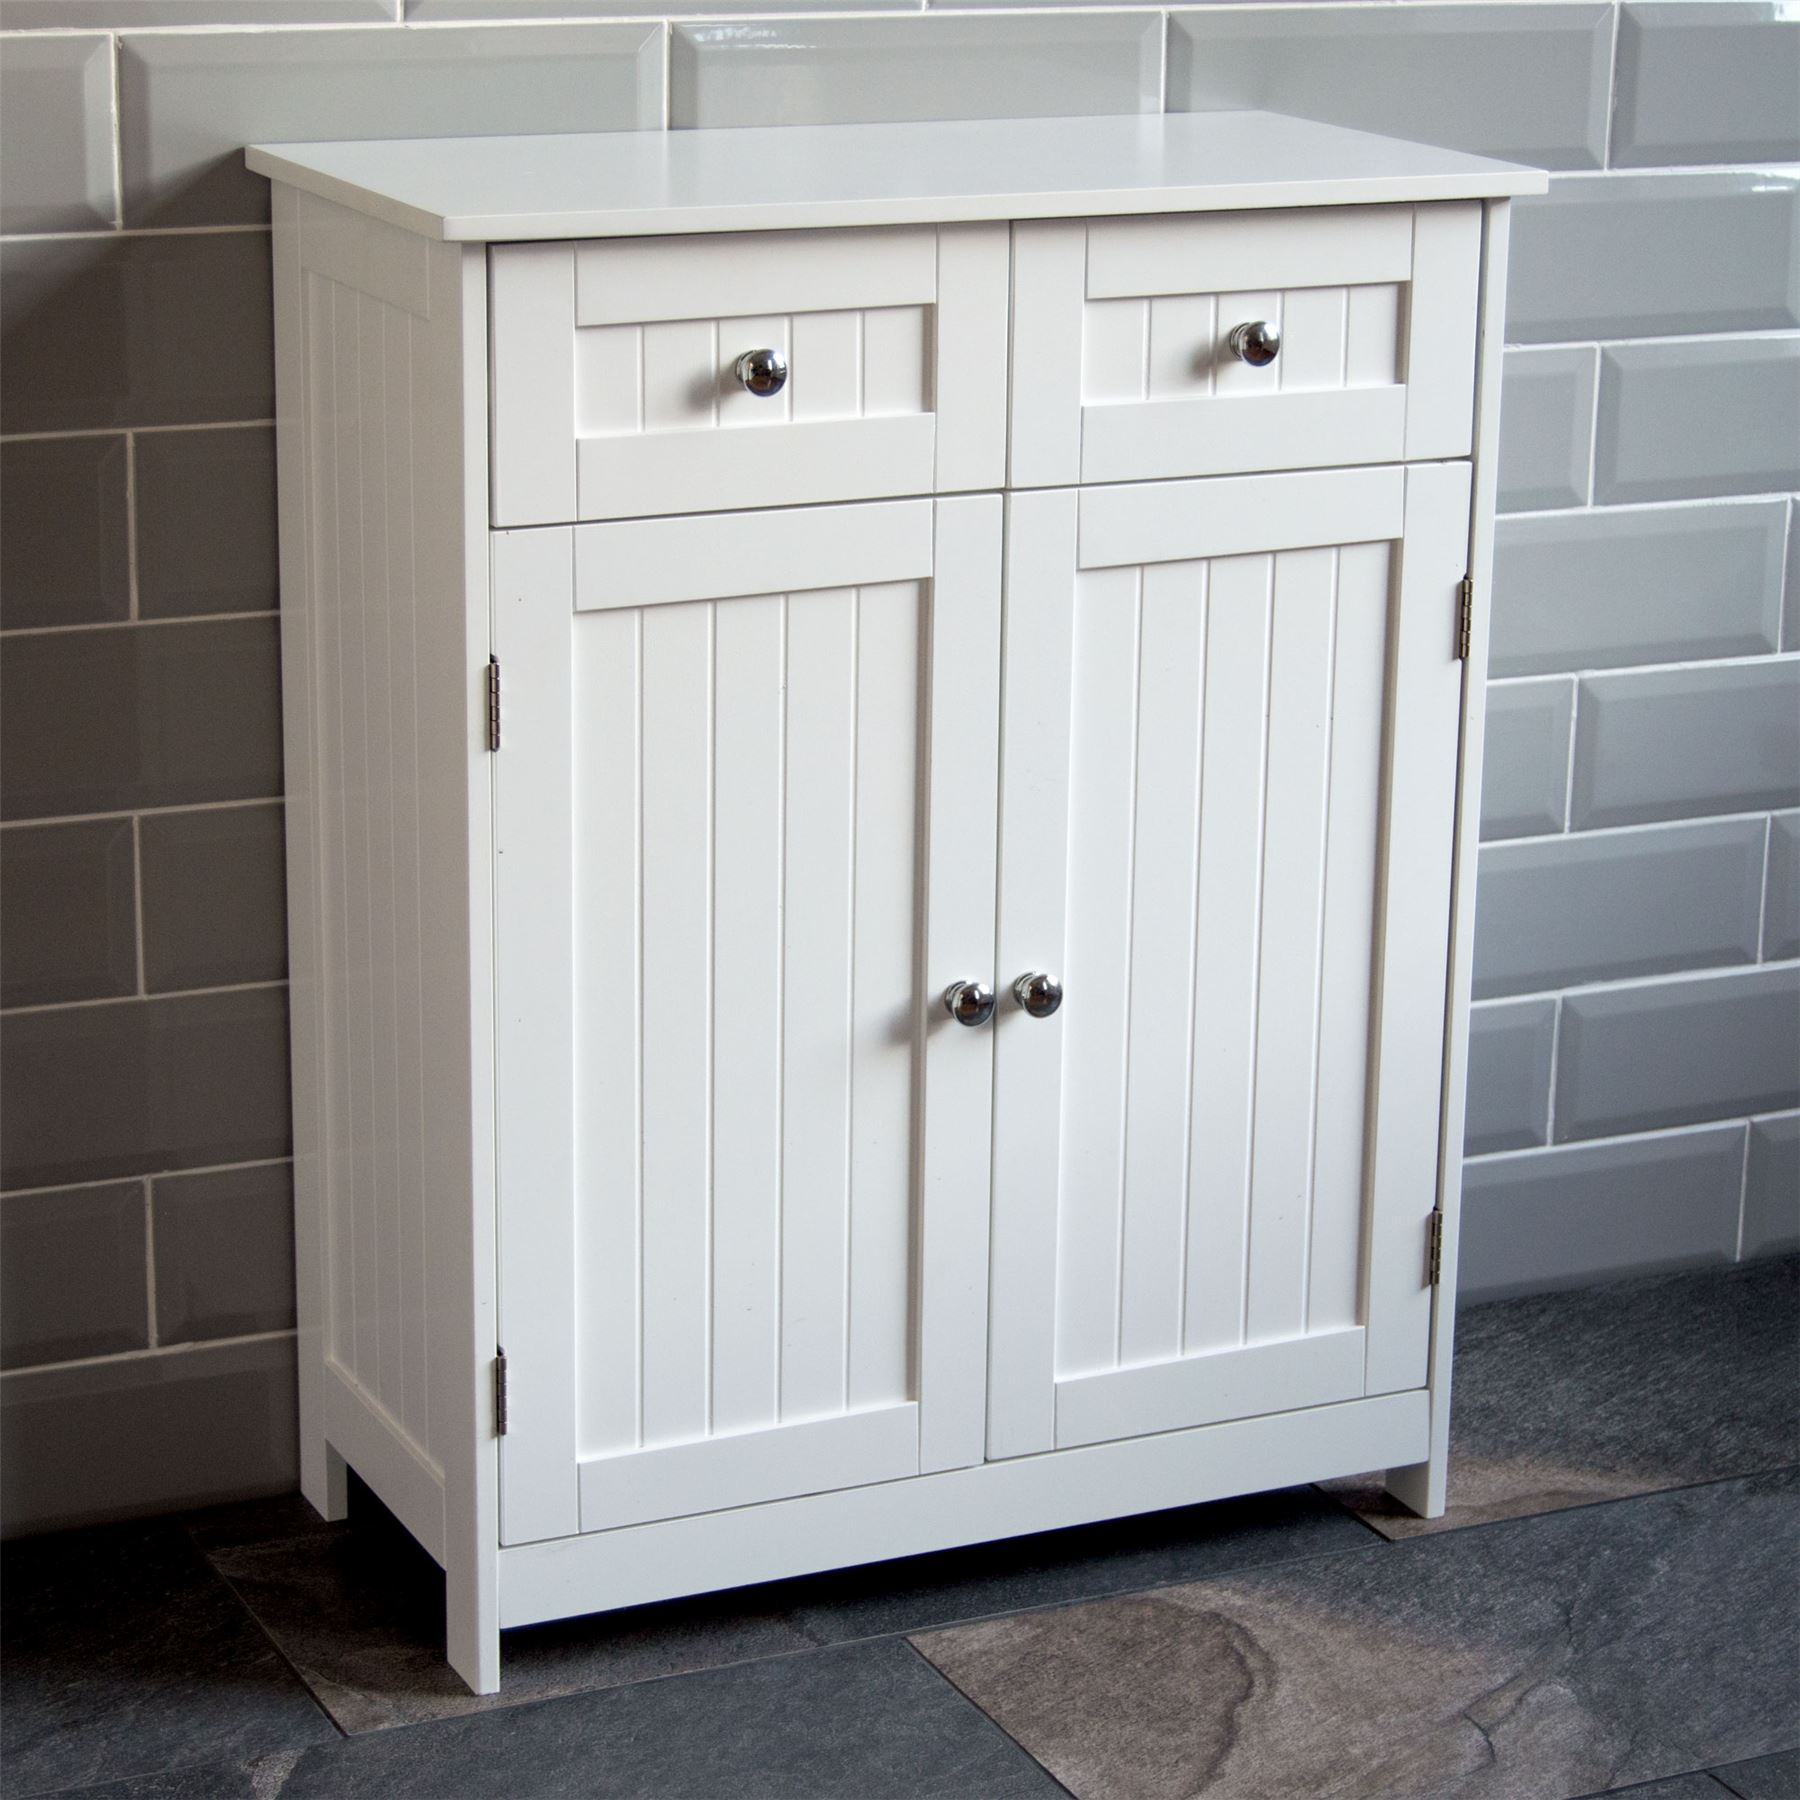 Priano bathroom cabinet 2 drawer 2 door storage cupboard - Bedroom storage cabinets with drawers ...